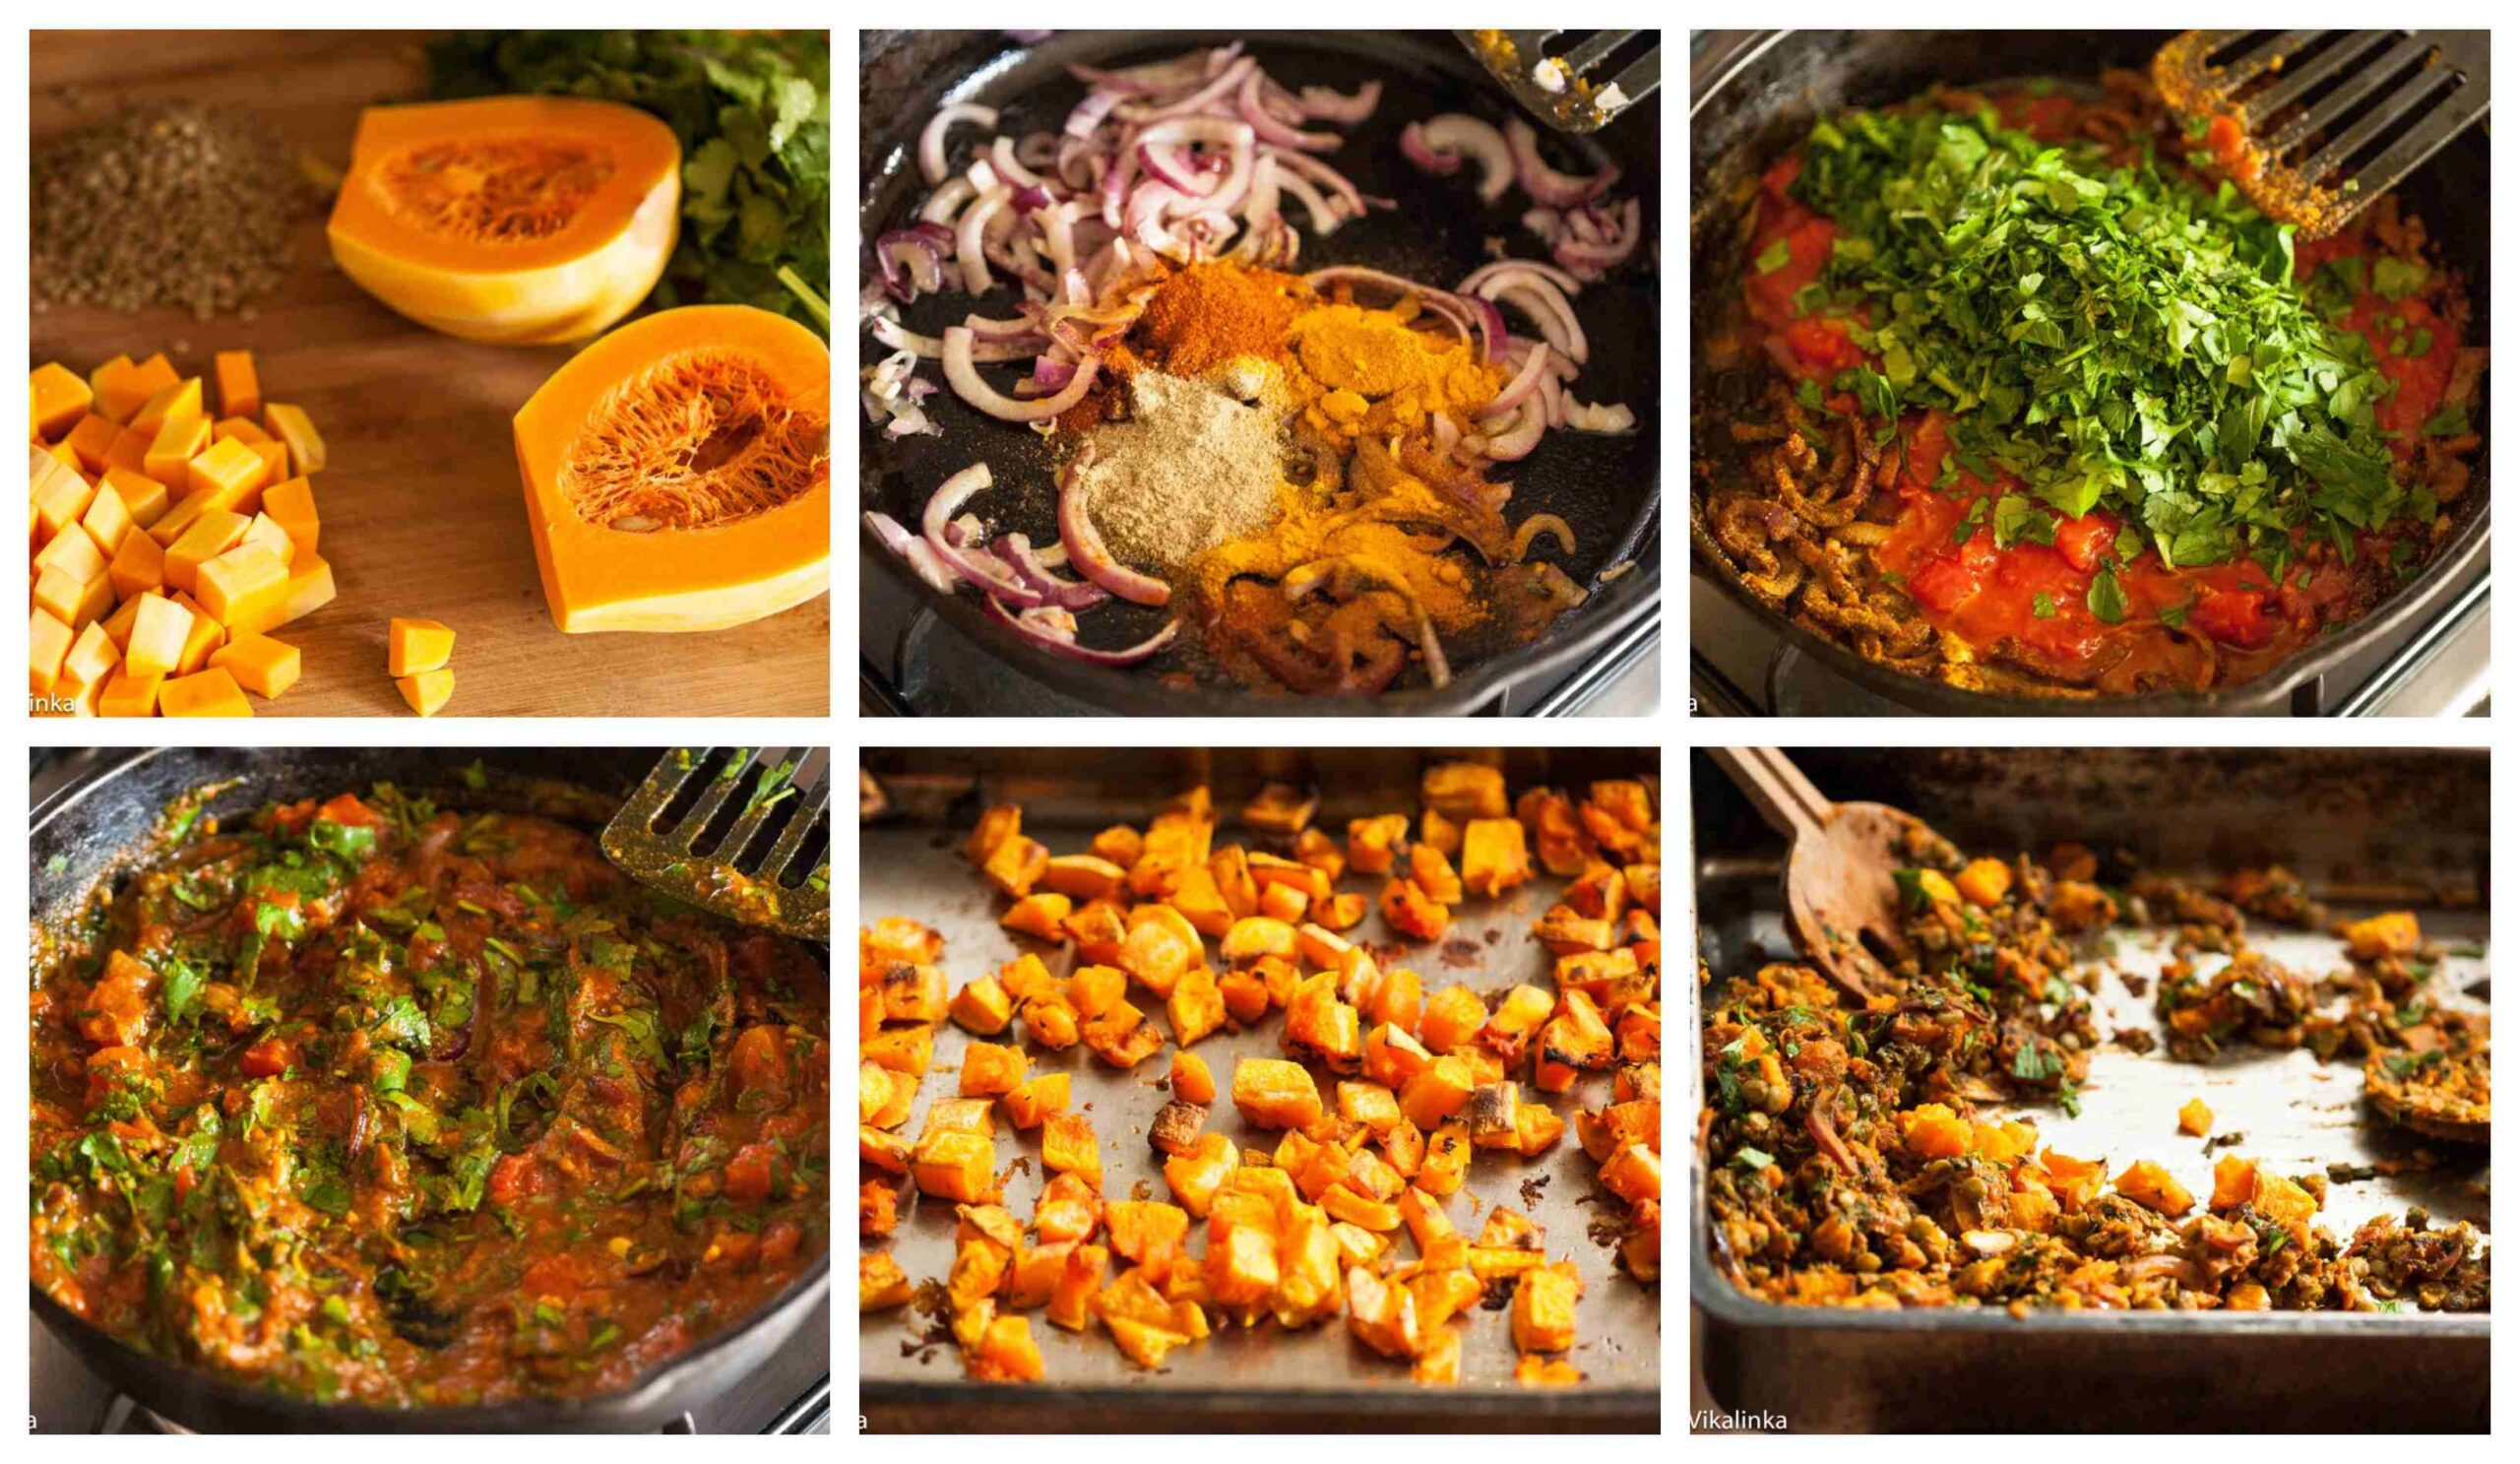 Butternut squash and lentils recipe step by step process images